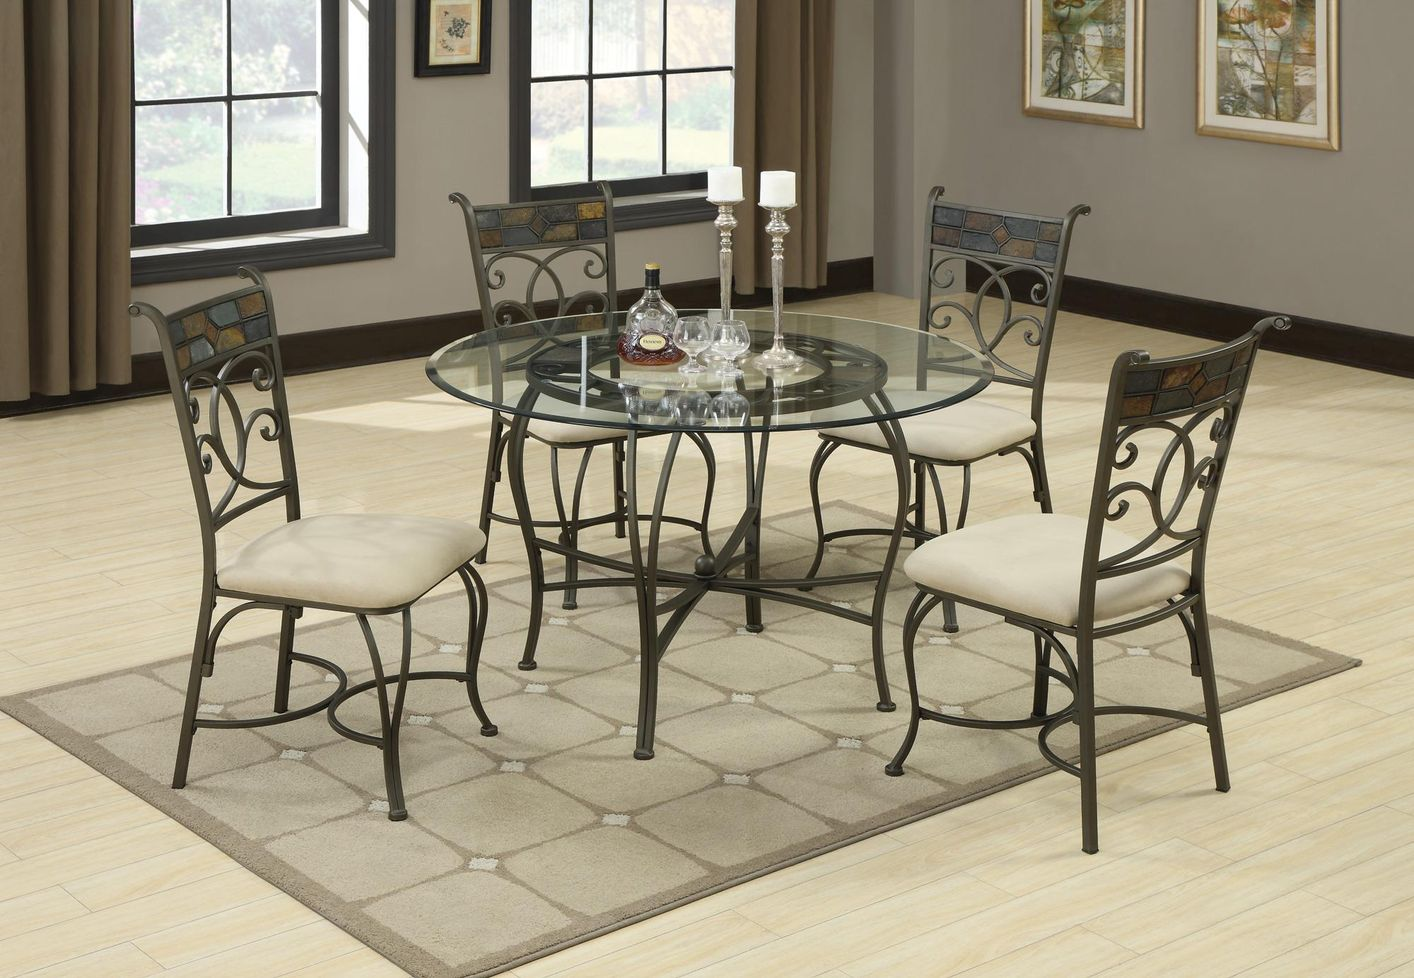 Simple Glass Table Sheridan Grey Metal Sheridan Grey Metal Glass Table Glass Table Walmart Glass Table Cover houzz 01 Glass Dining Table